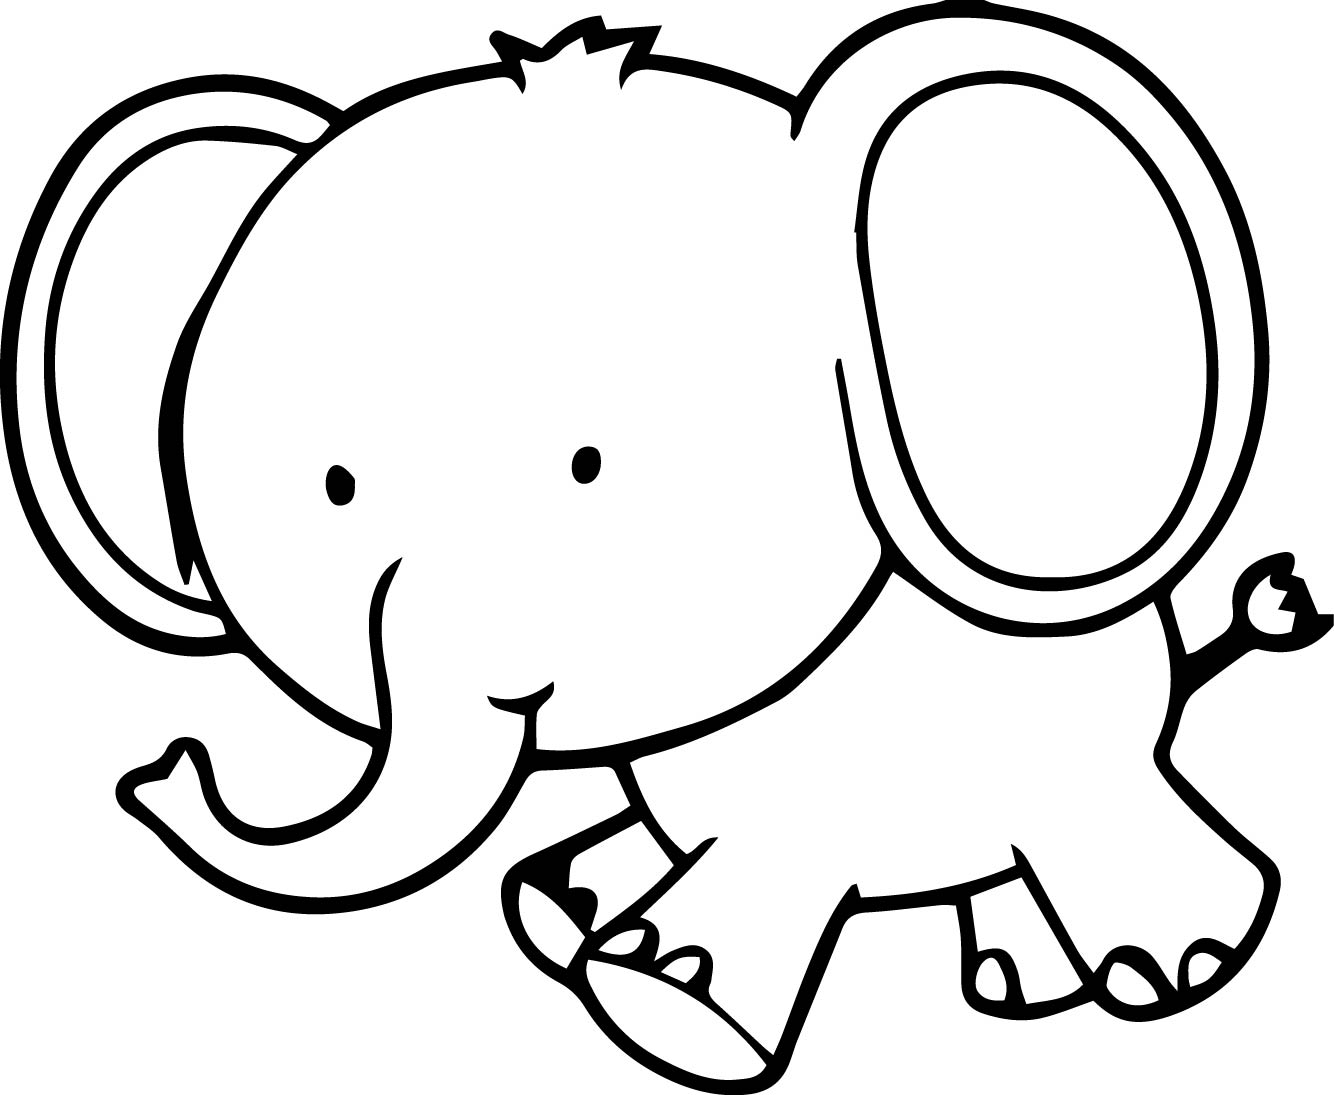 simple baby elephant coloring pages easy elephant coloring pages ideas for beginners simple pages coloring baby elephant